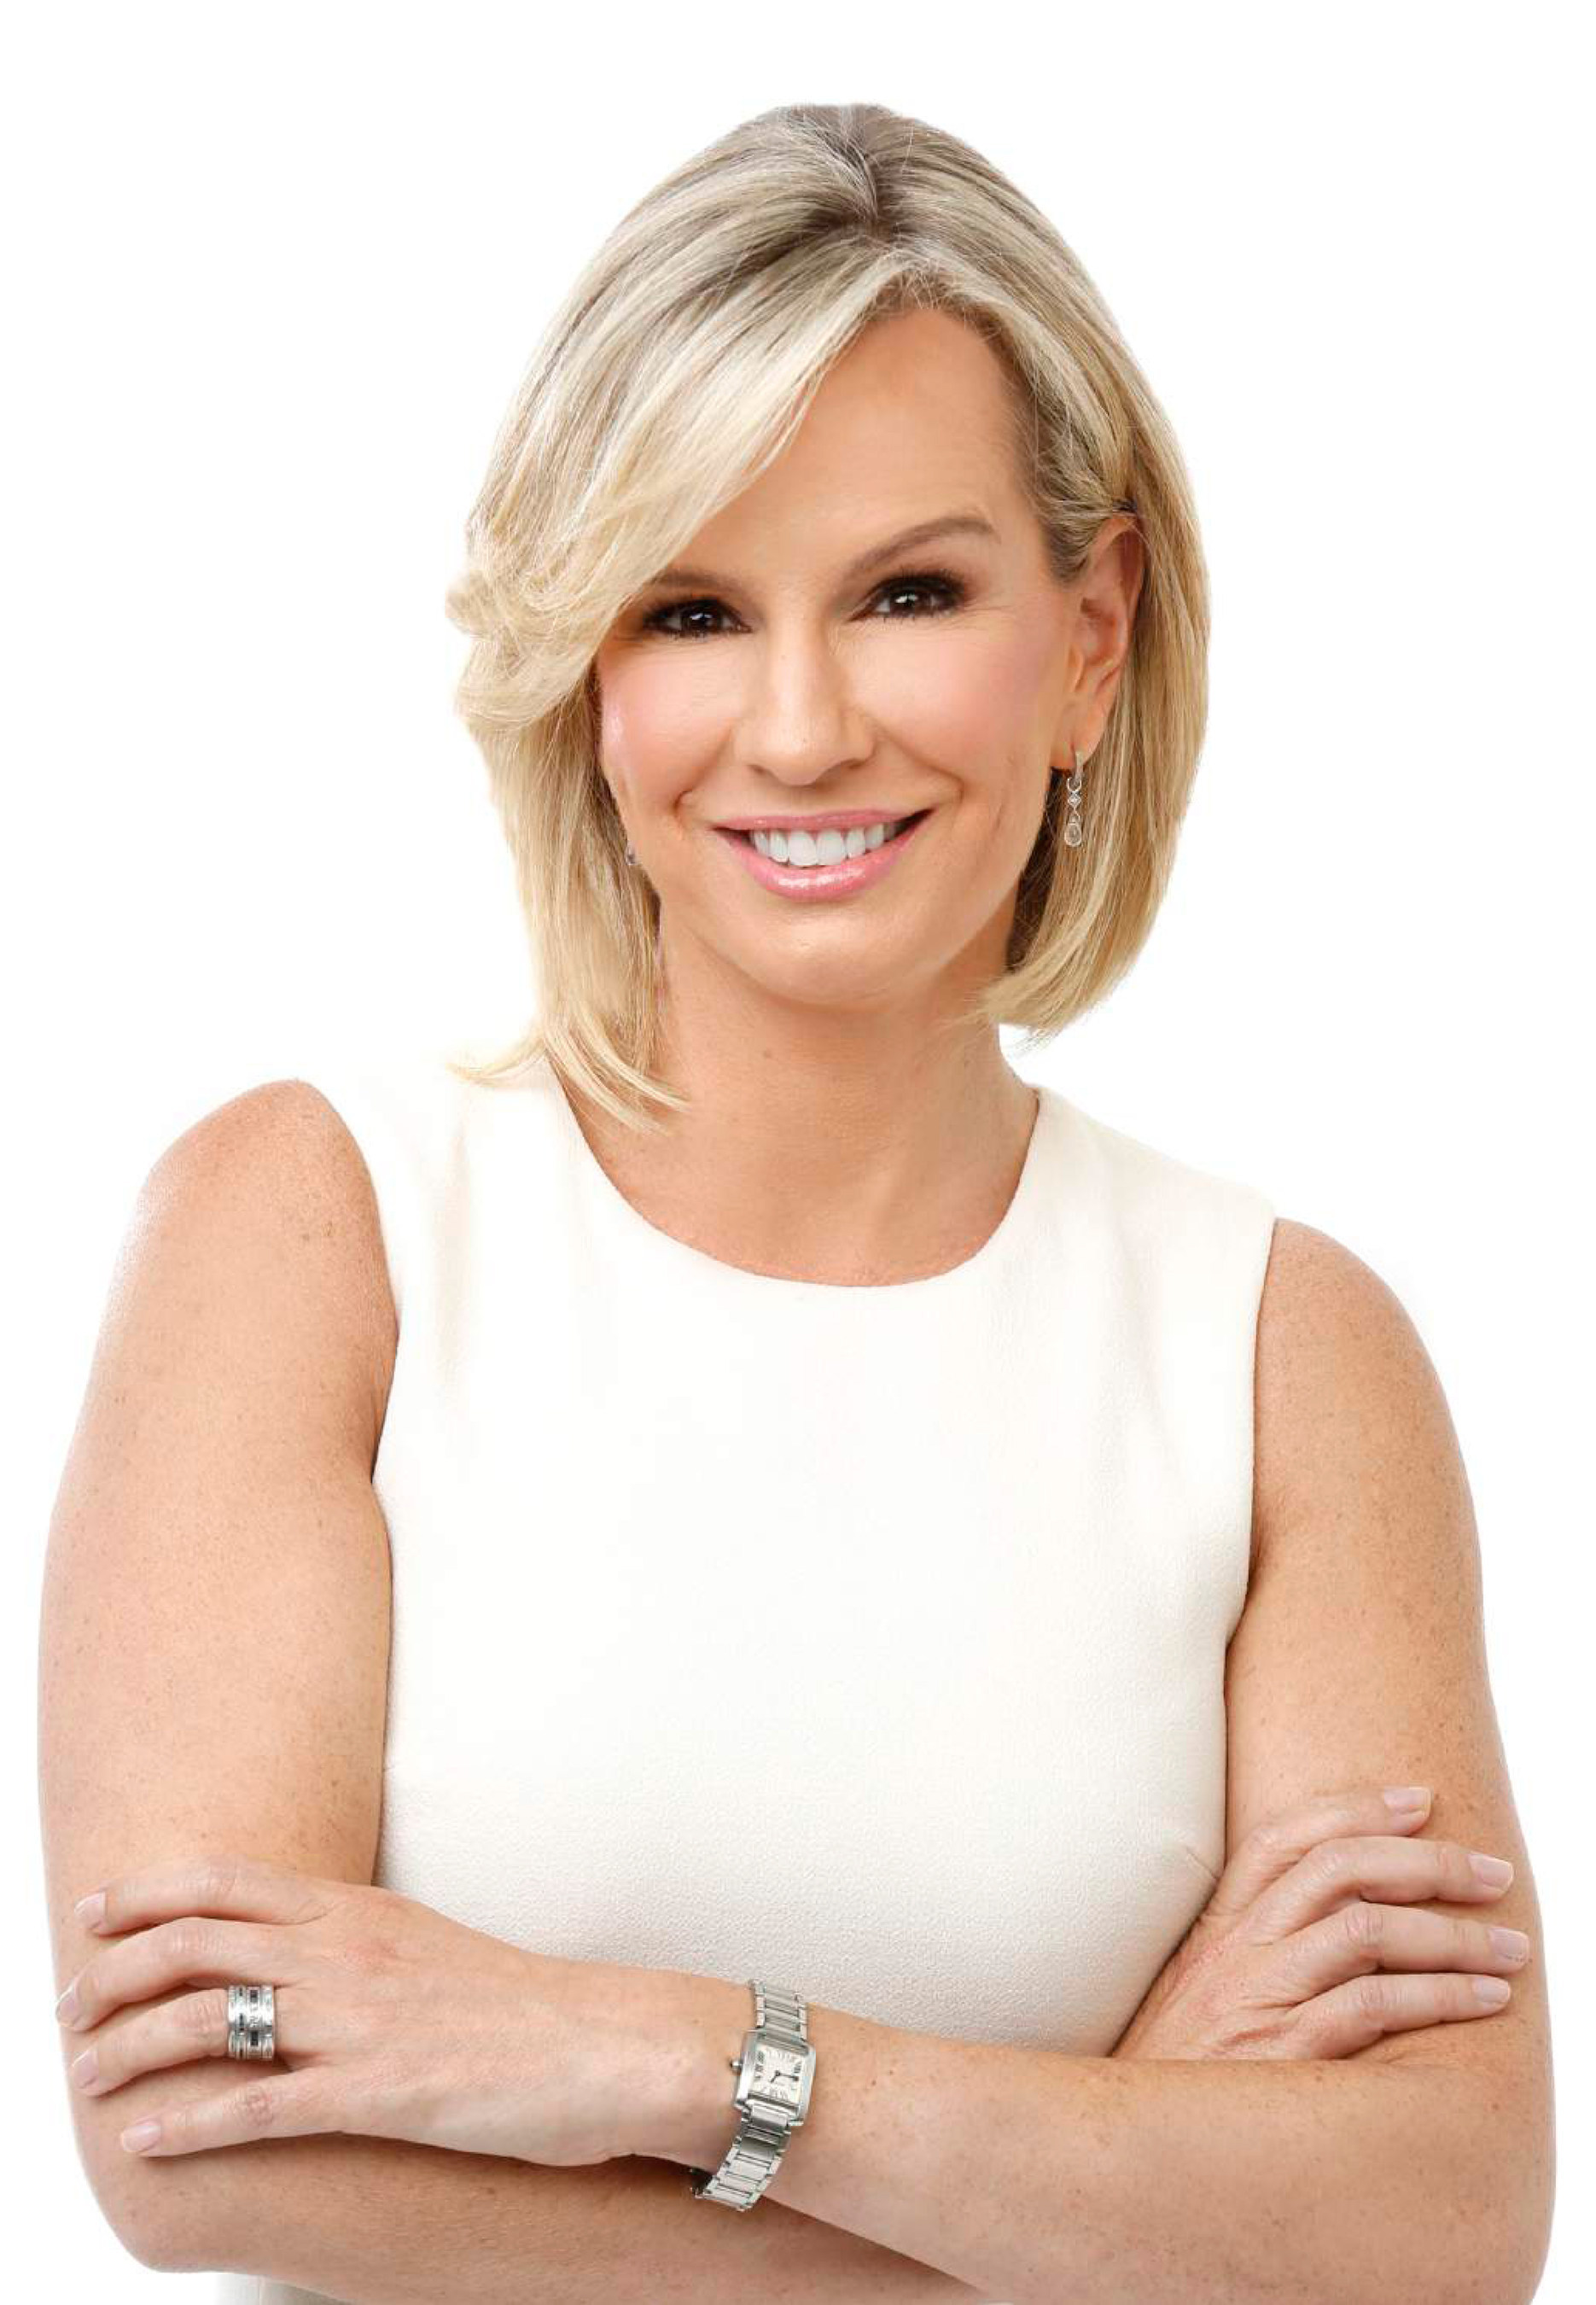 'The Dr. Oz Show' Names Dr. Jennifer Ashton Their First Ever Chief Women's Health Contributor